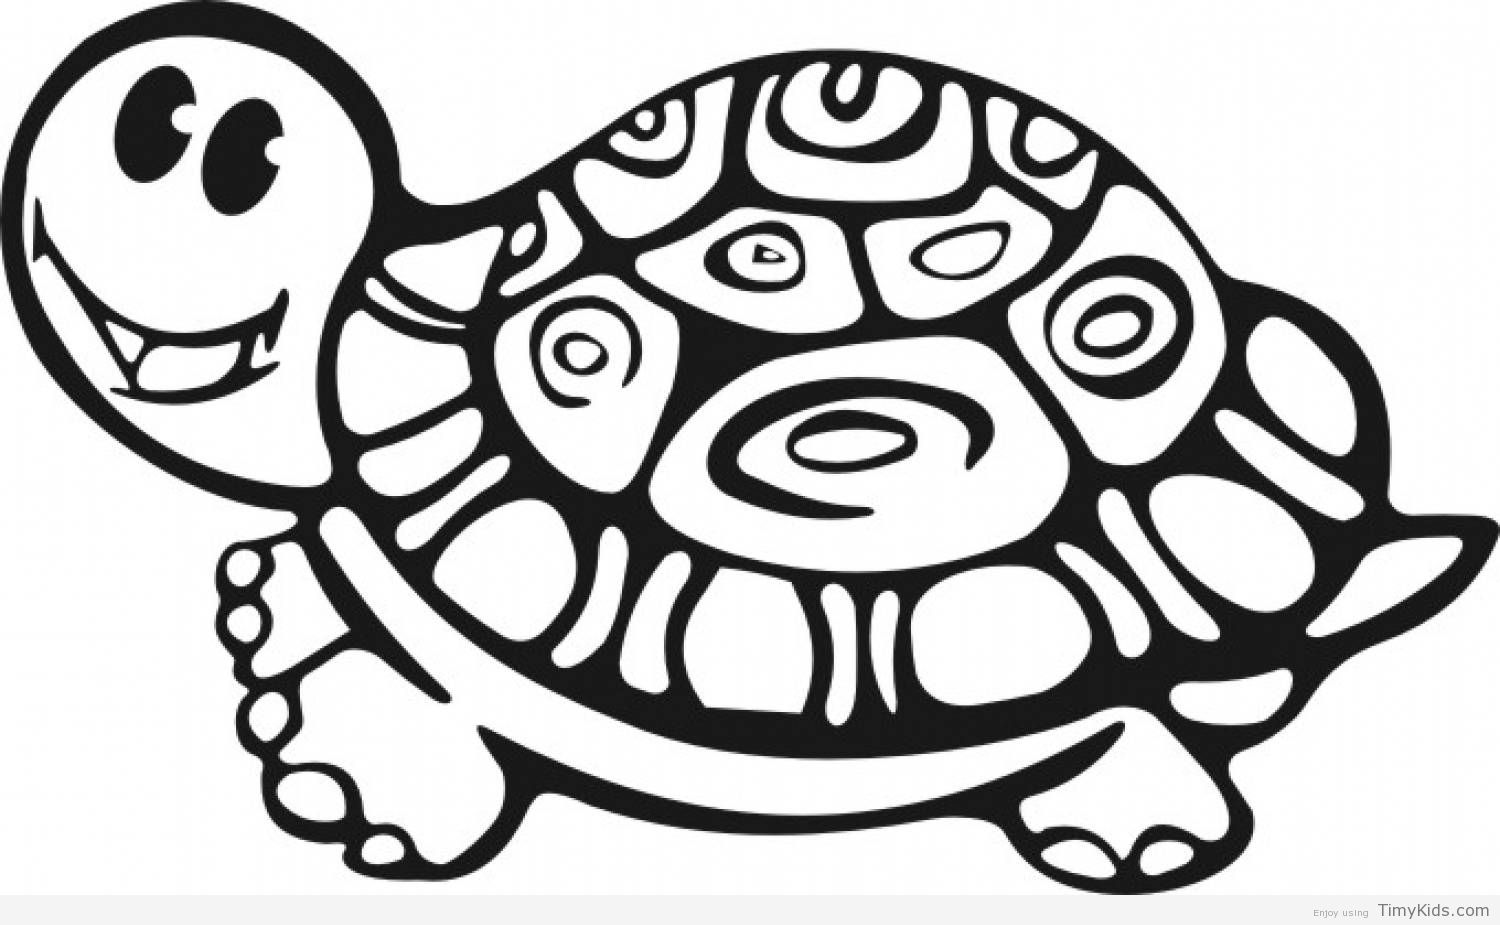 http://timykids.com/coloring-pages-turtles.html | Colorings | Pinterest